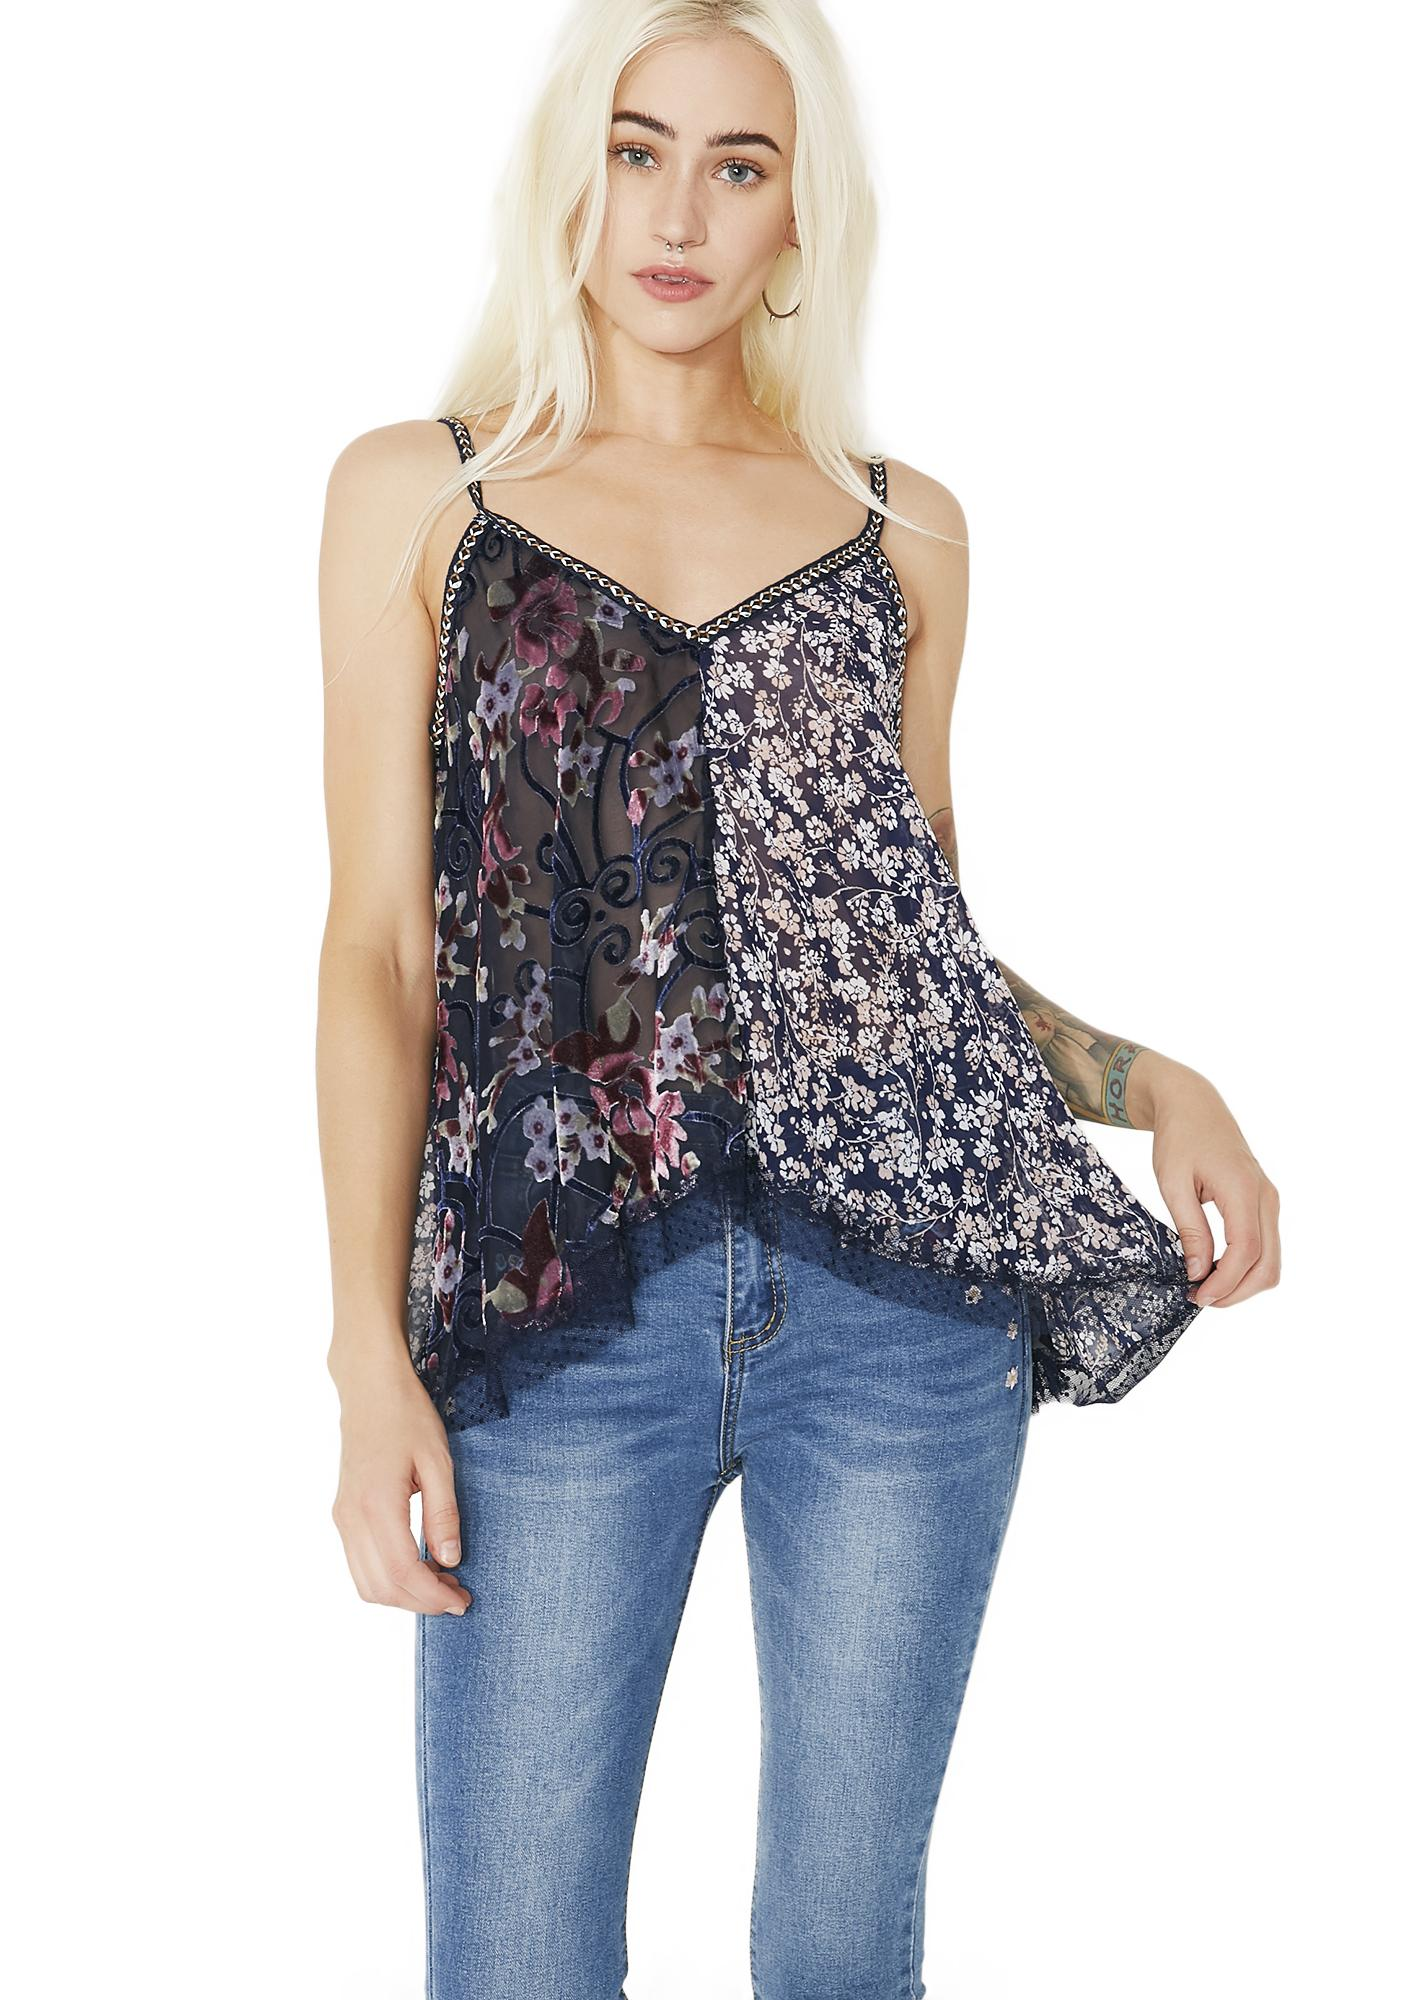 Vines Intertwined Velvet Floral Tank